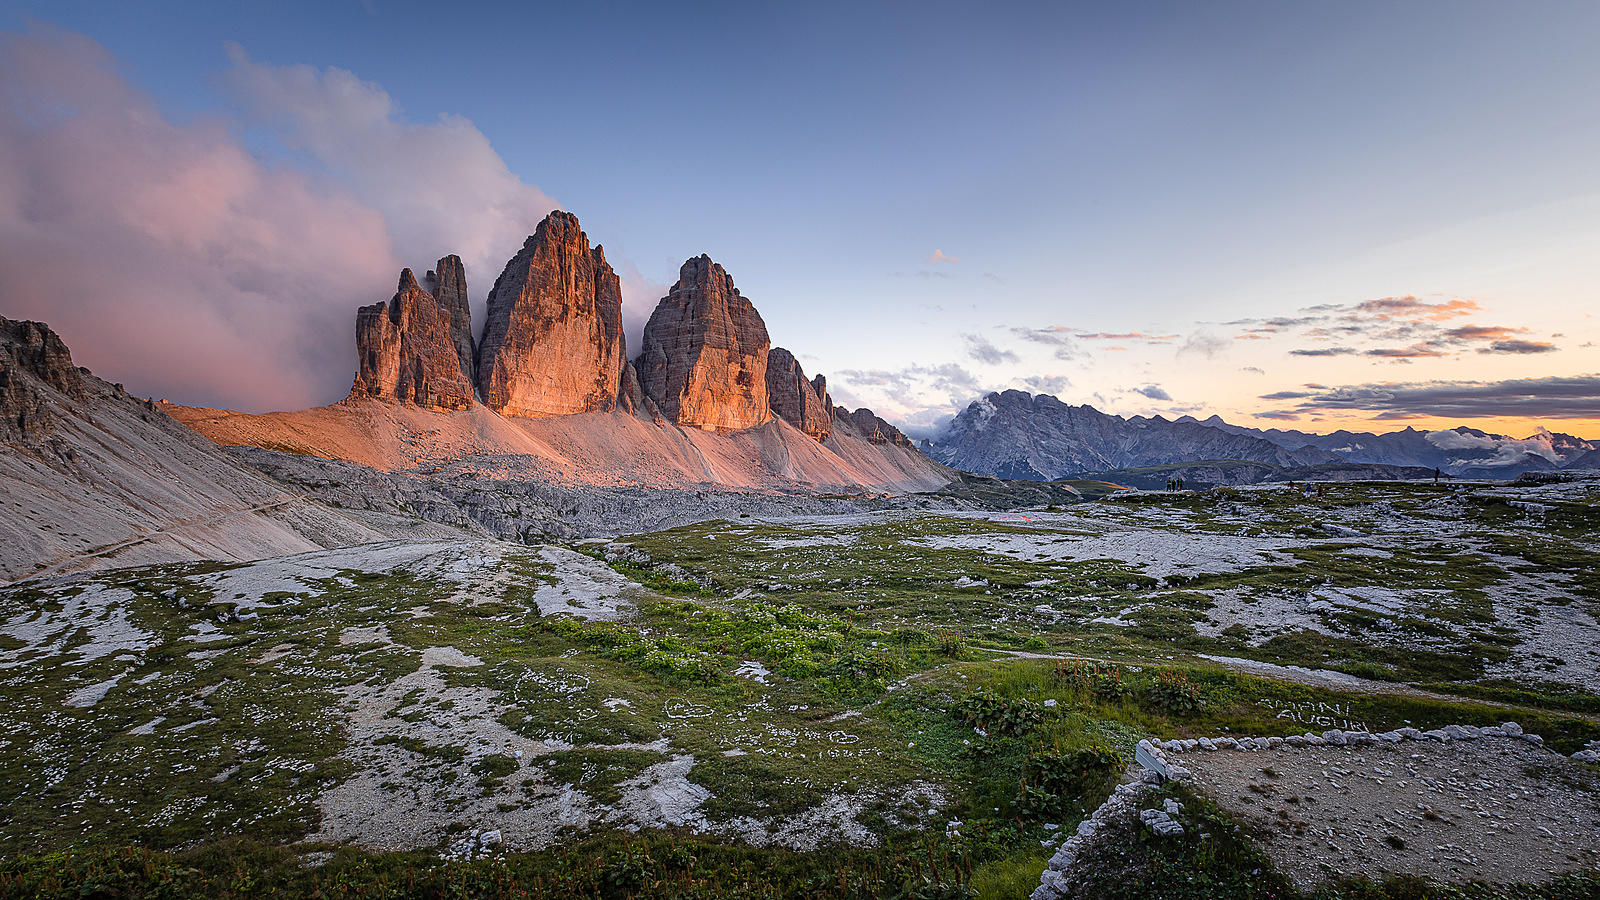 Sunset at Tre Cime di Lavaredo (Dolomites)